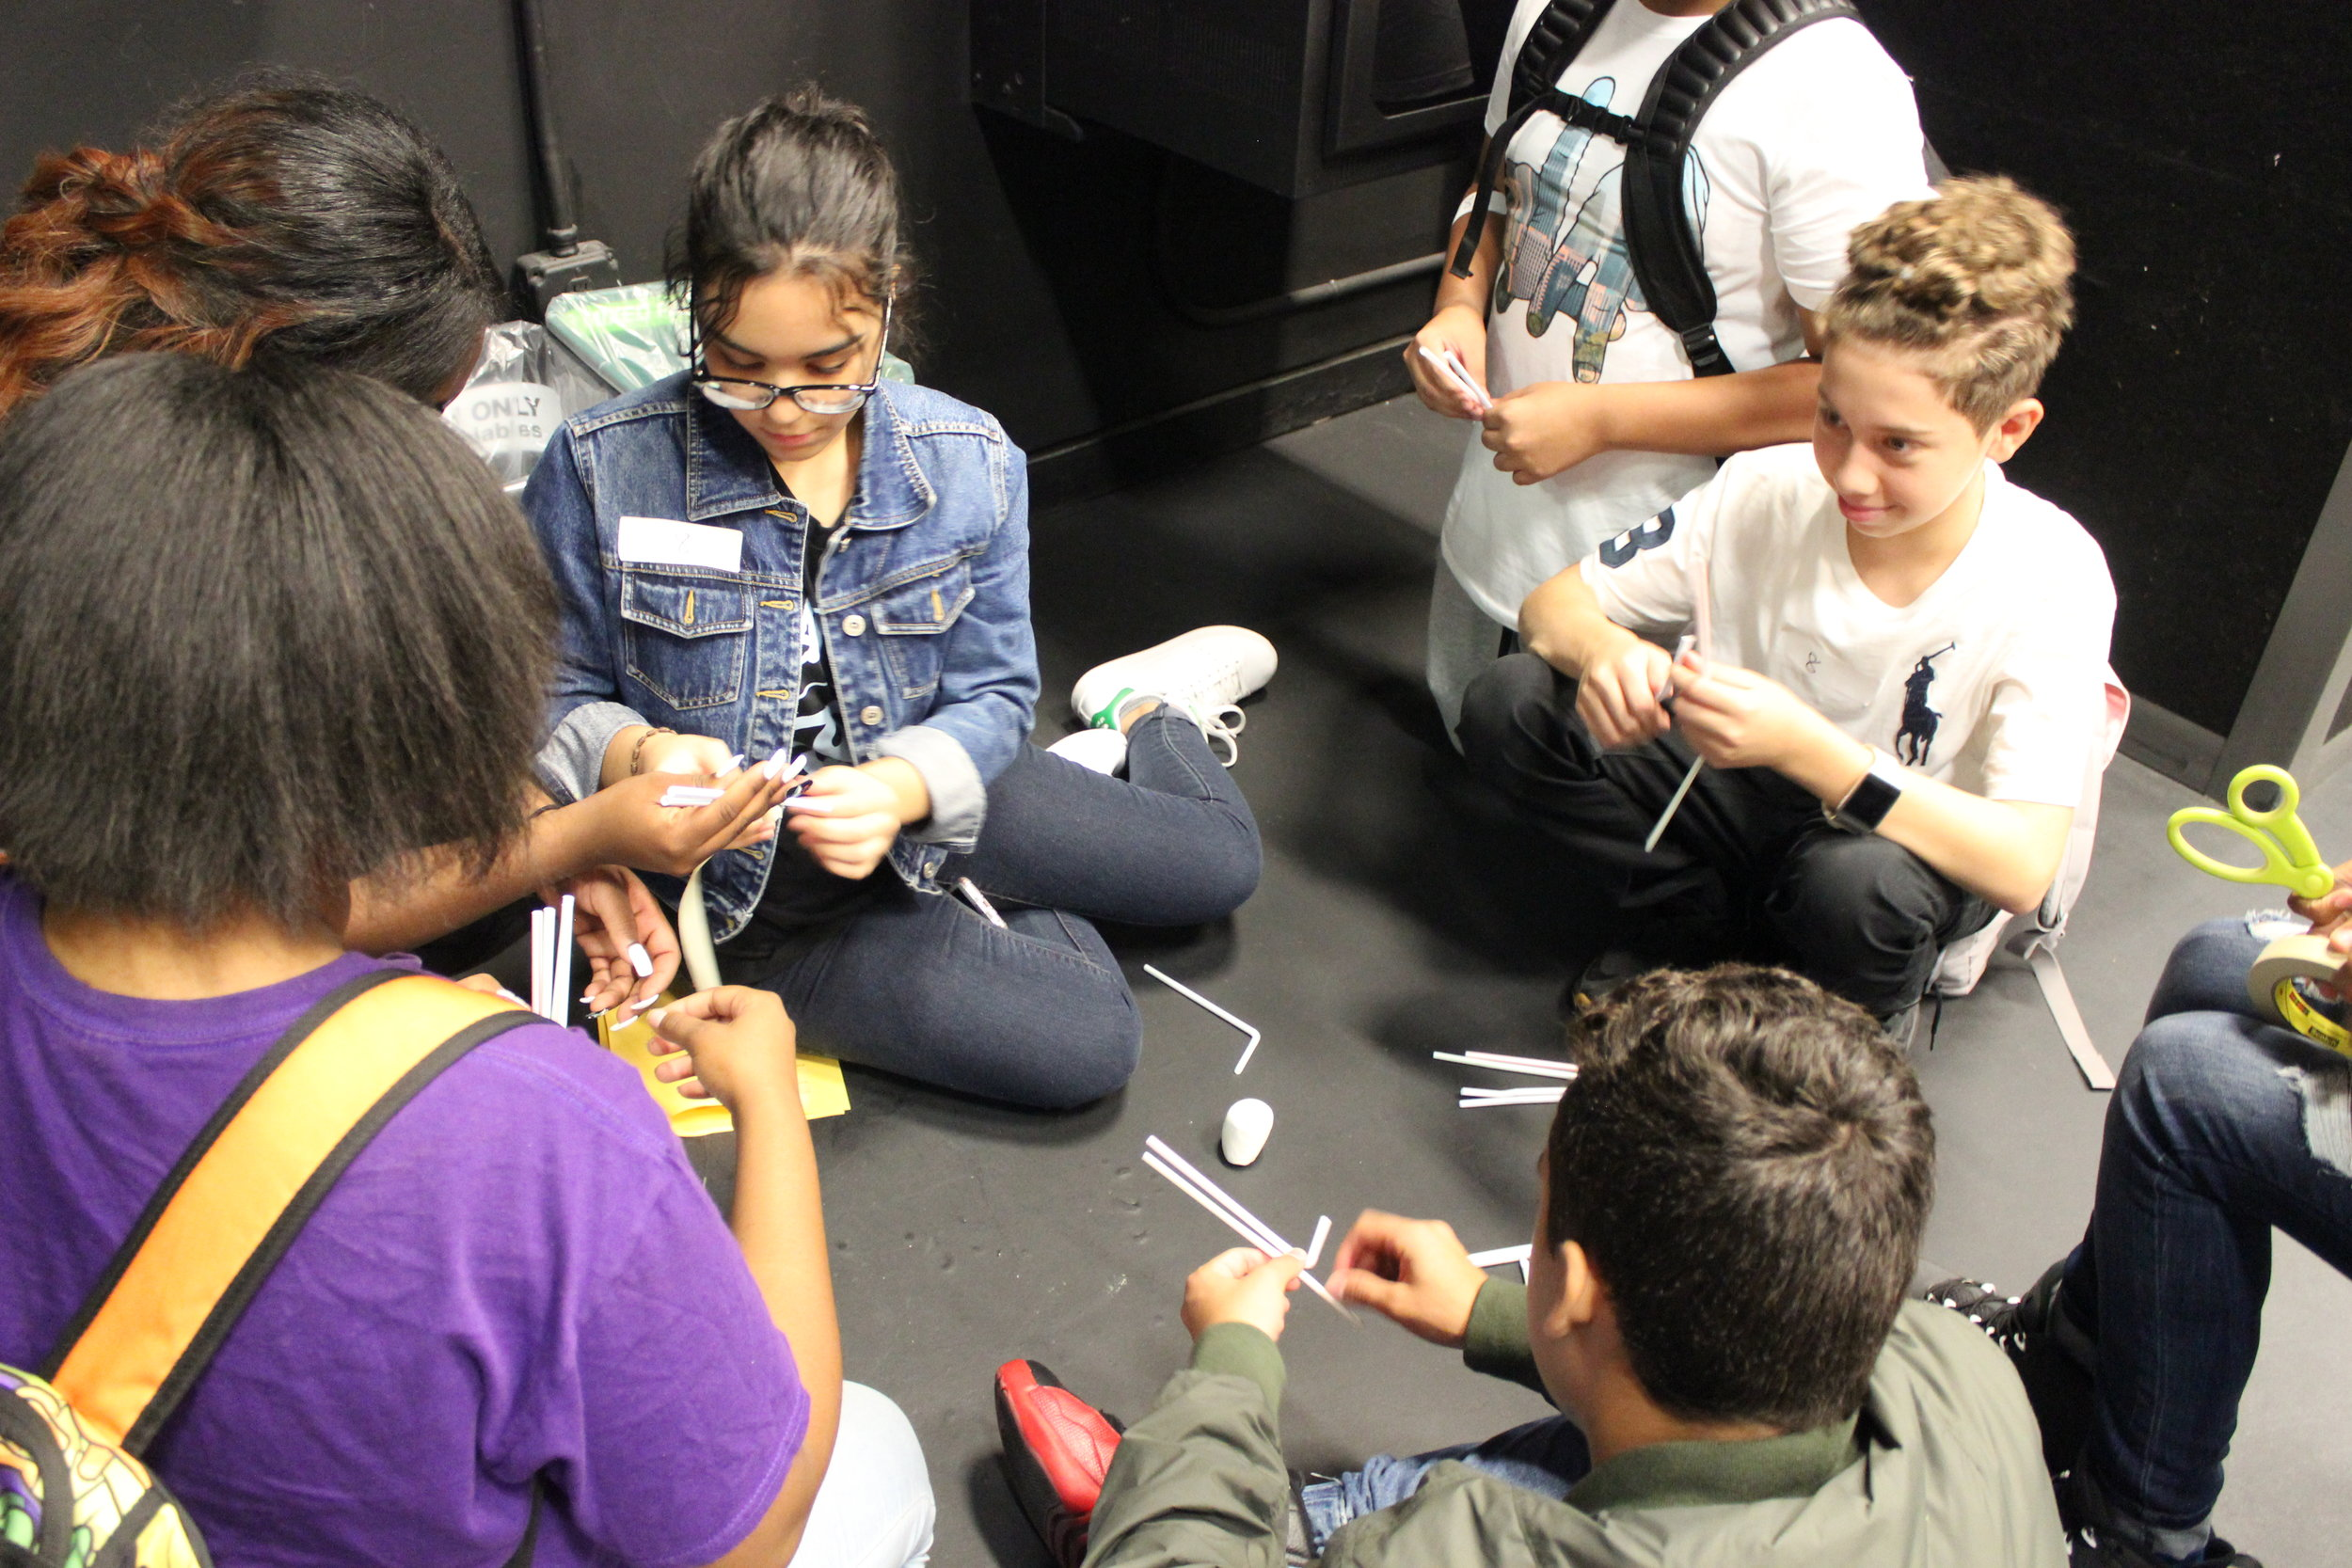 Alumni Fradaliza Valdez, current Queens College student, works with a silent group of new UAGC students